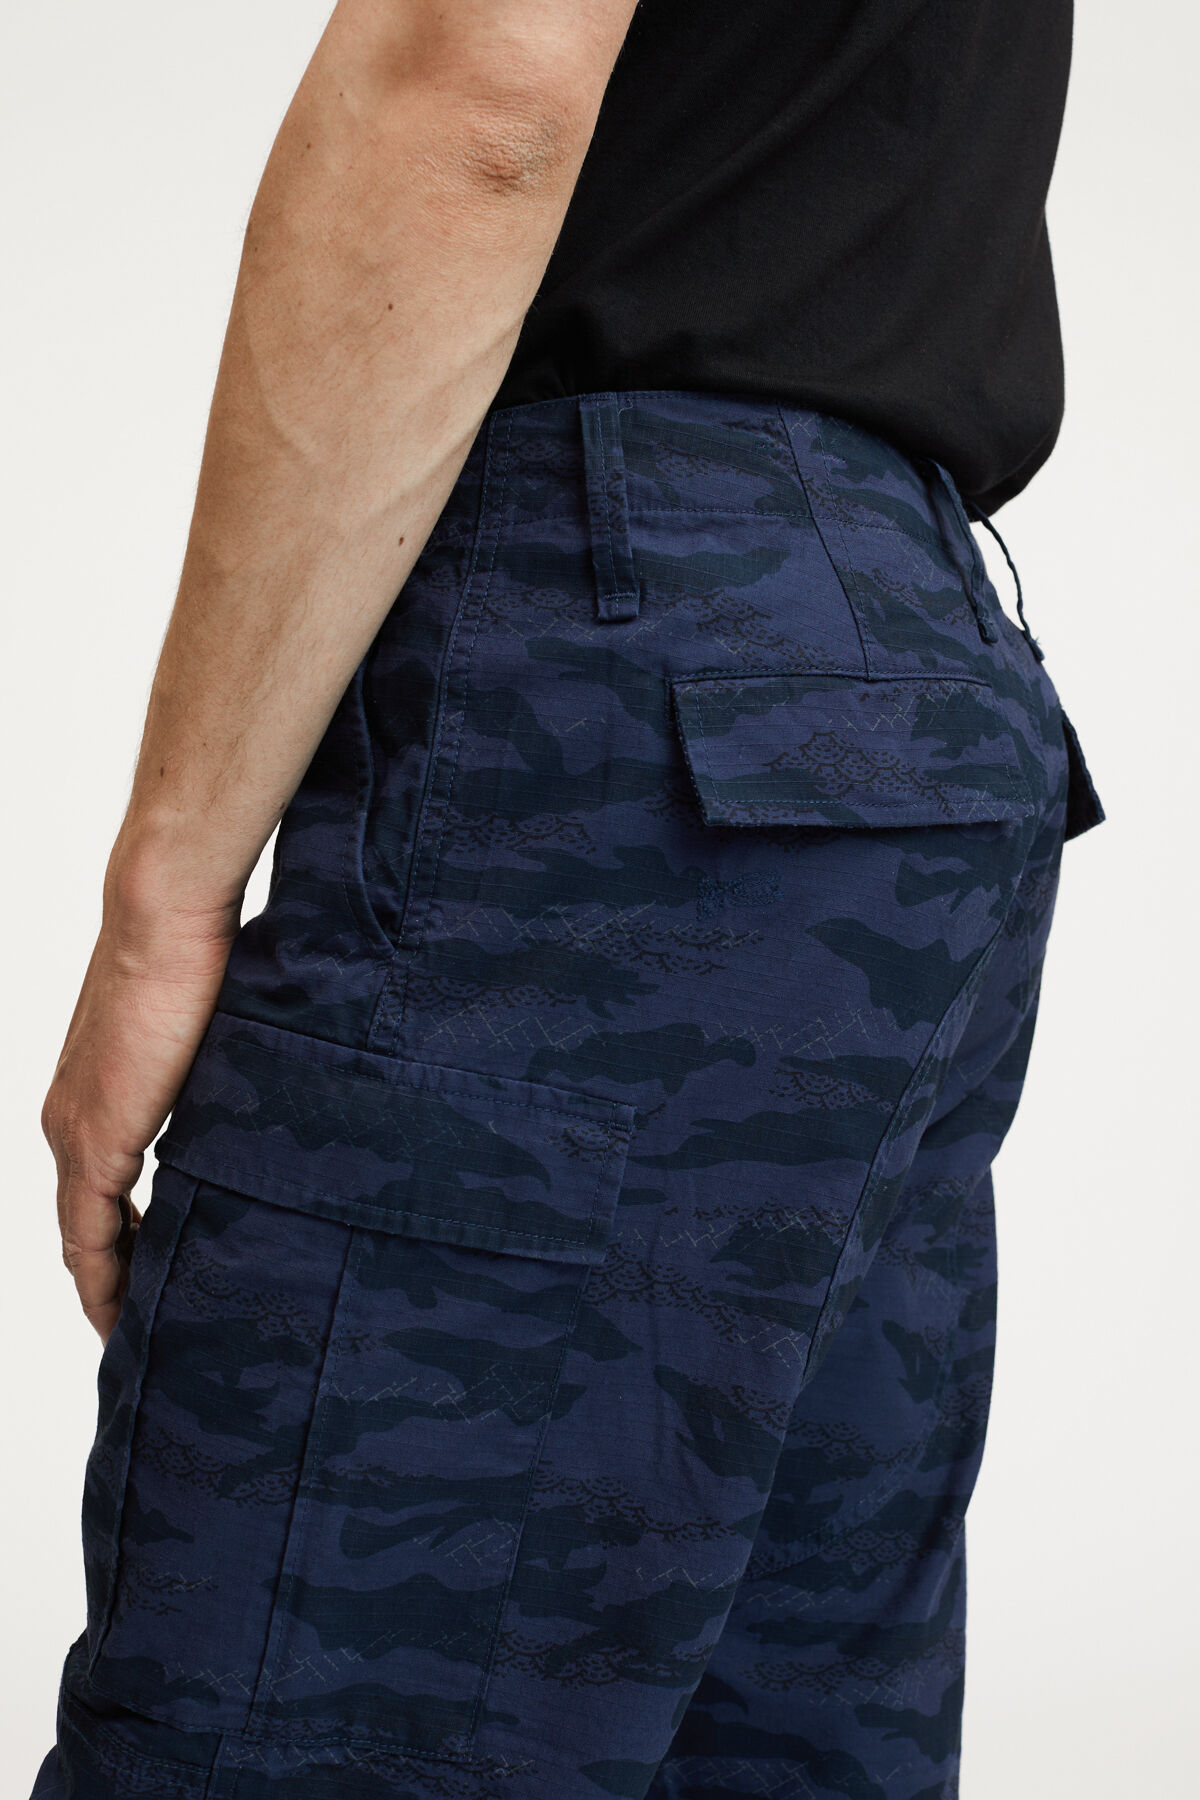 NATO PANT COTTON RIPSTOP CAMOUFLAGE PRINT - Wide Fit